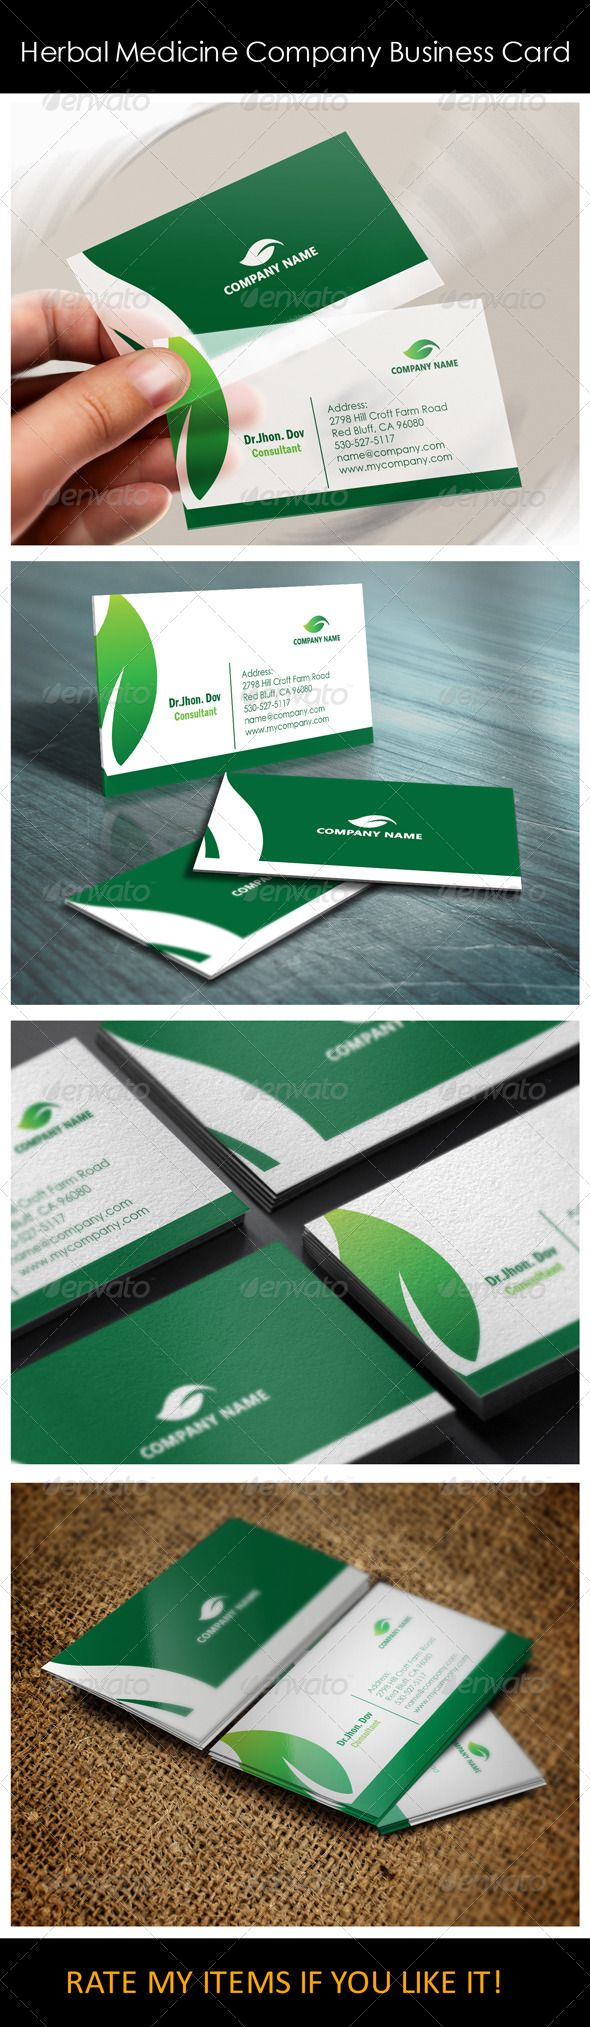 Herbal Medicine Company Business Card Templates Company Business Cards Business Card Maker Student Business Cards